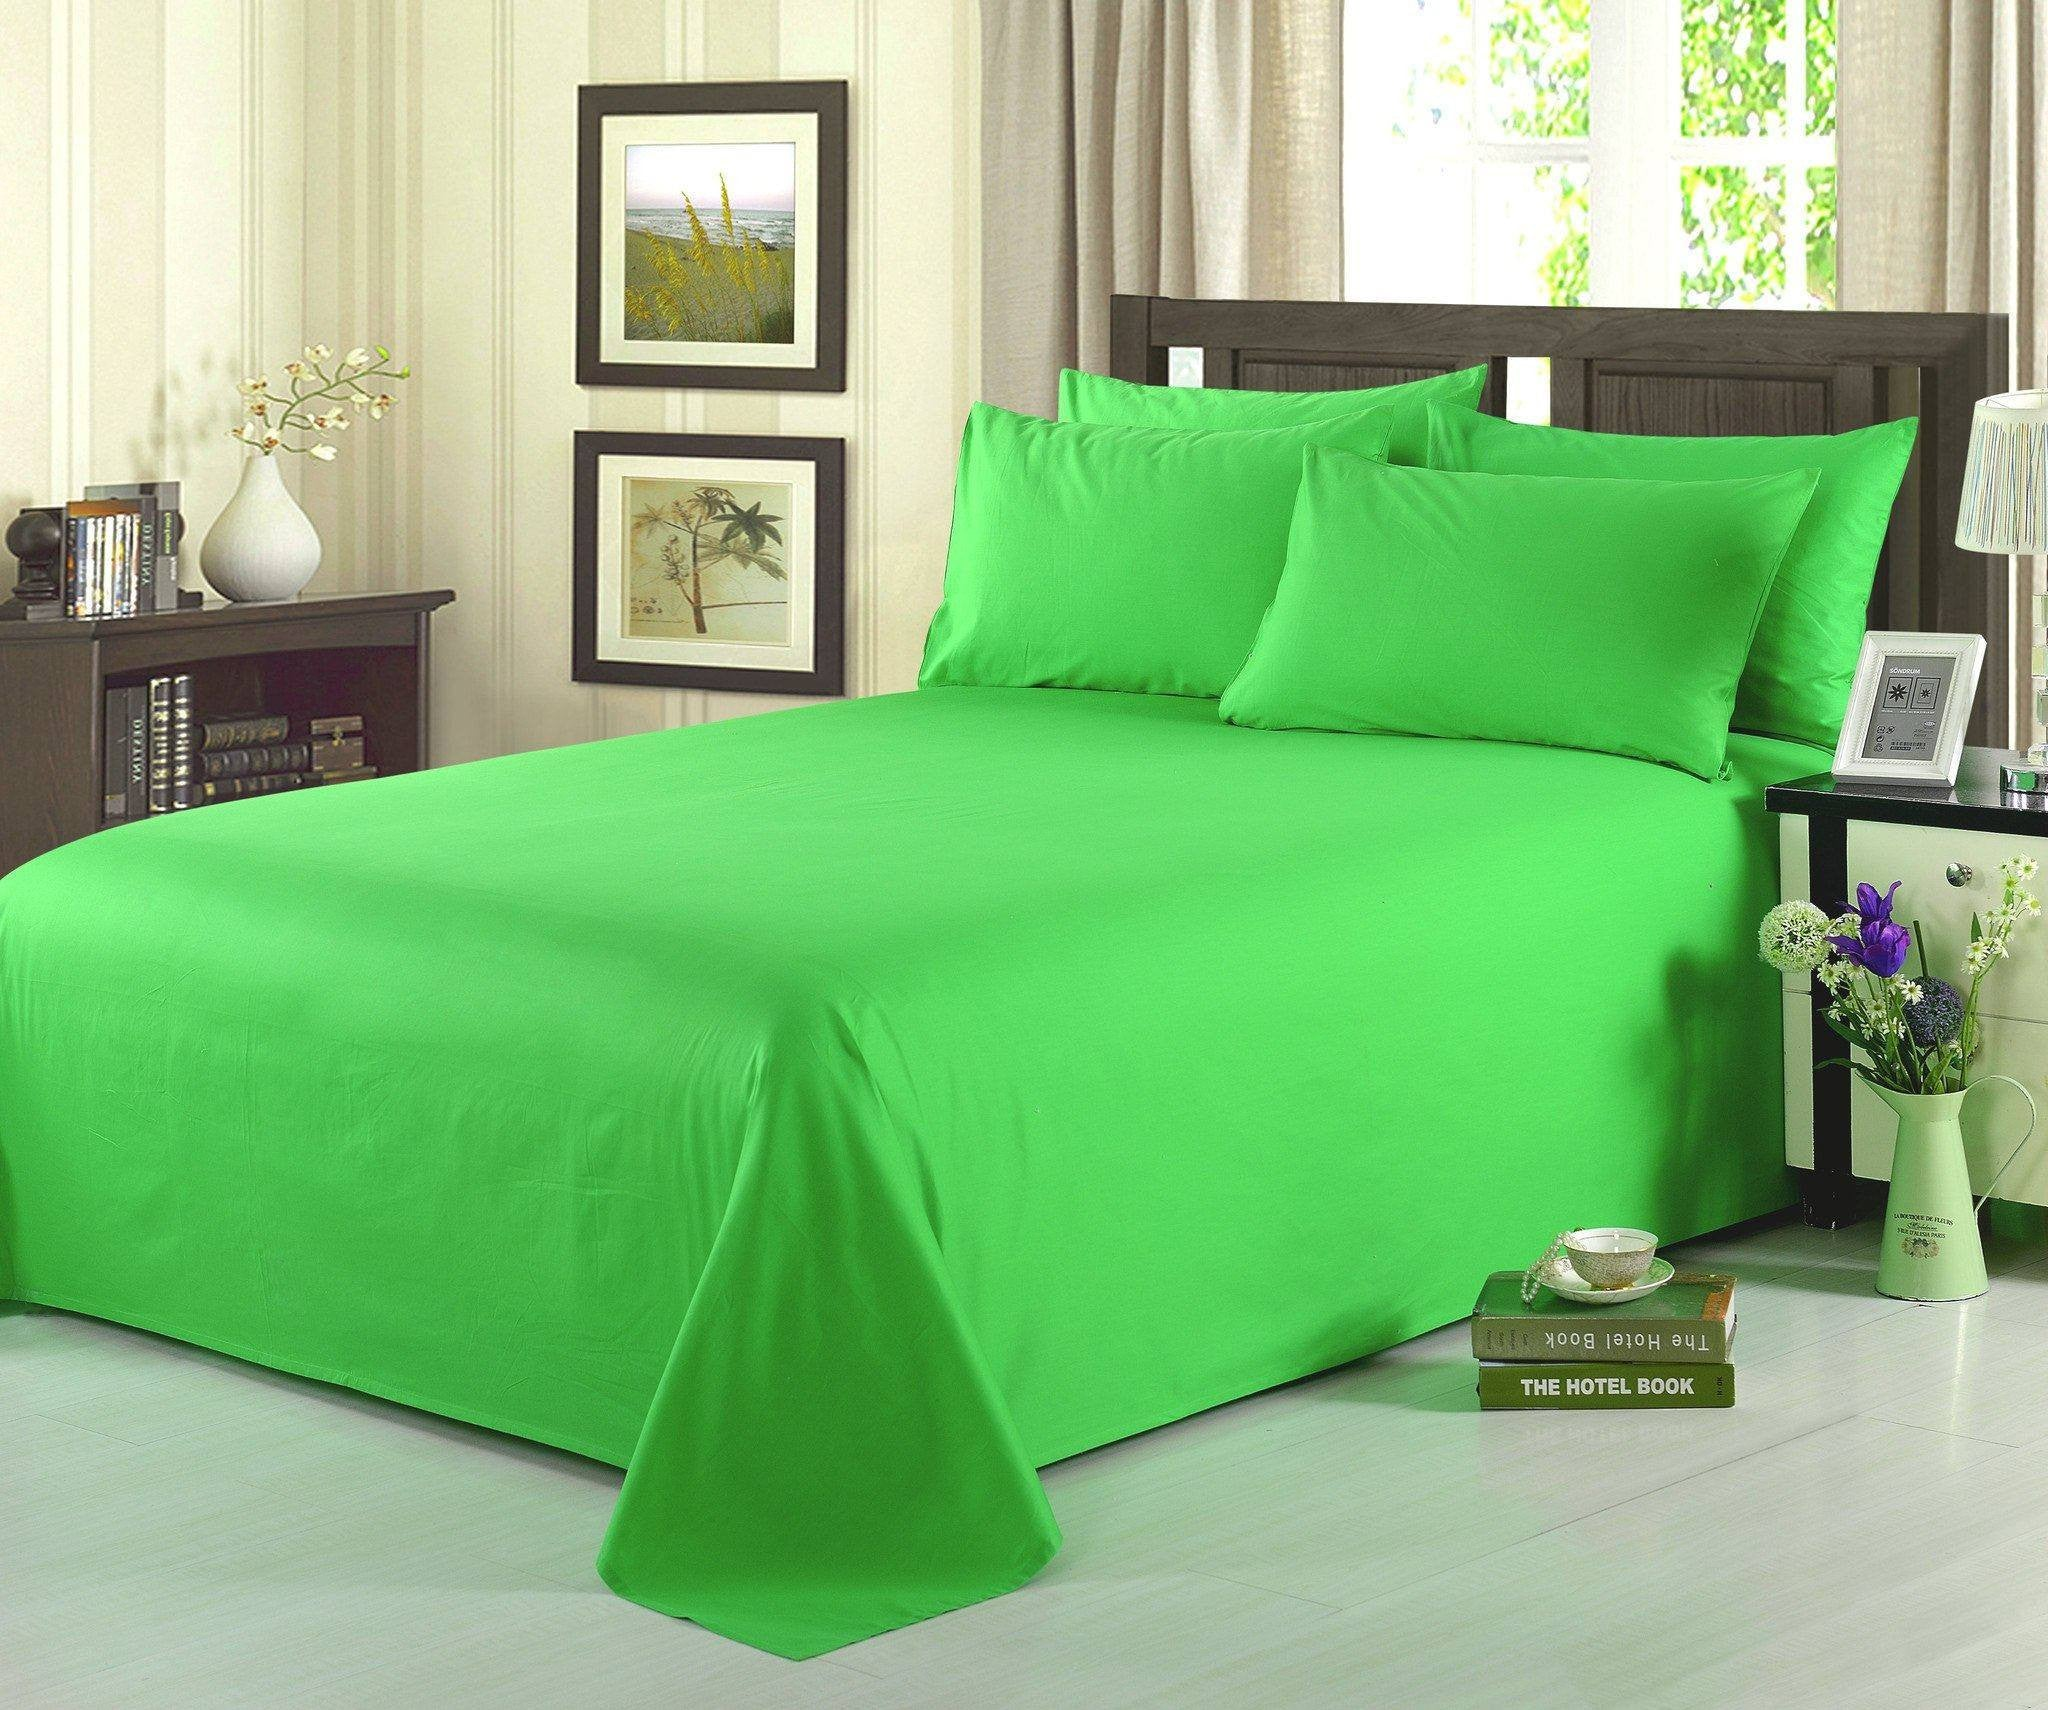 100 lime green bed linen bedding sale clearance bedding sale bedlinen discount cambridge - Green pixel bedding ...